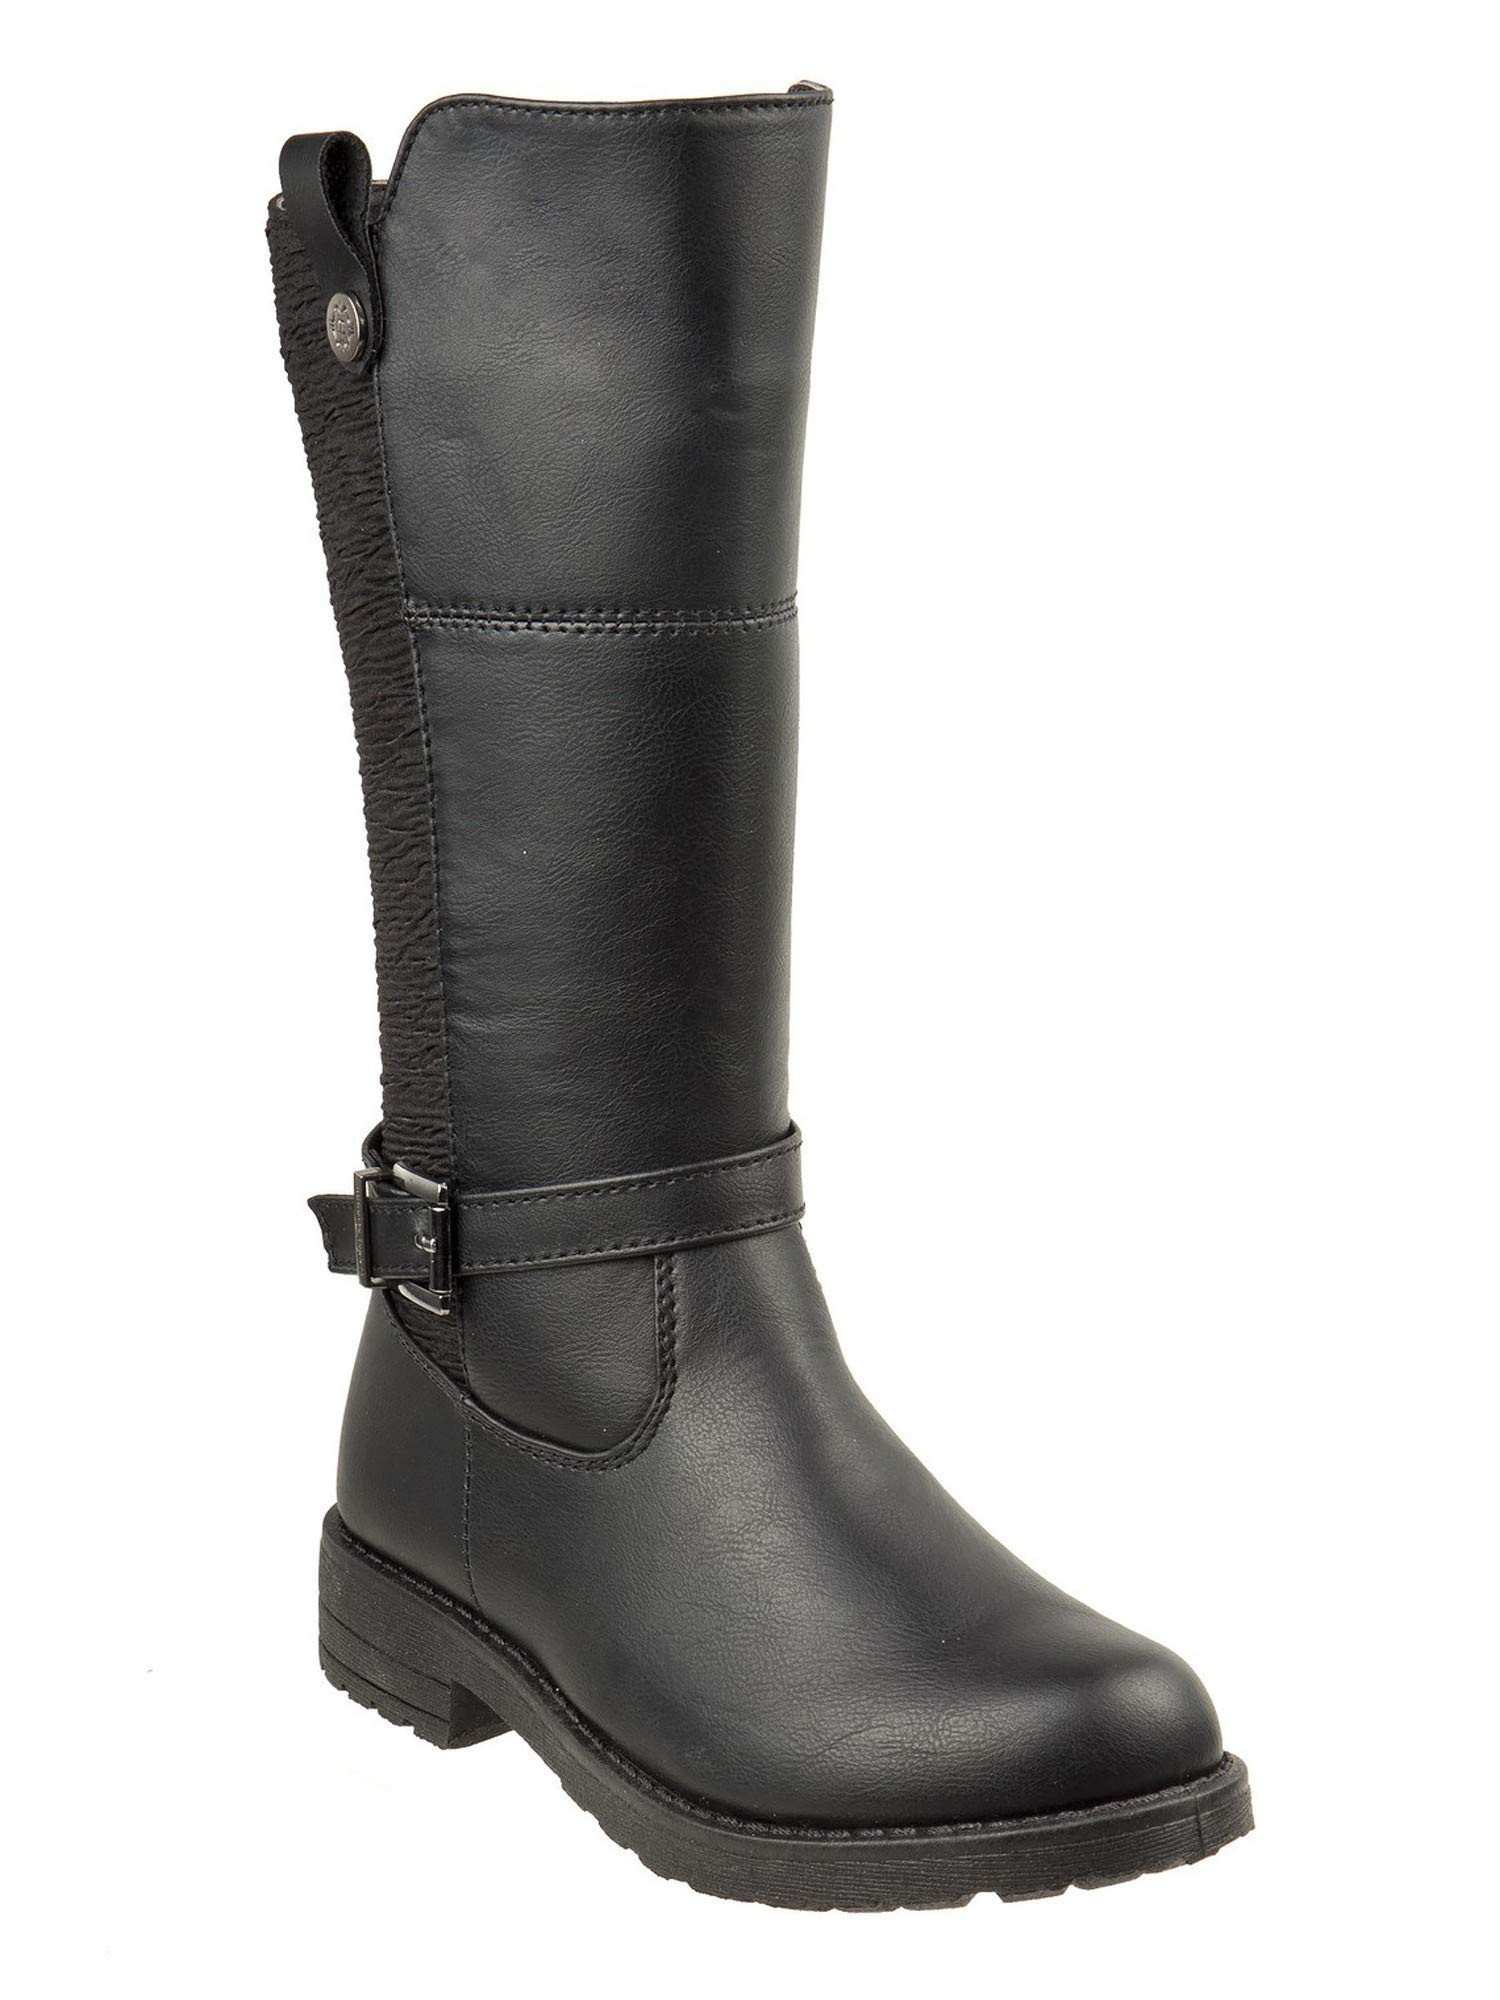 Nanette Lepore Girls Black Buckle Ankle Strap Side Zip Tall Boots 13 Kids